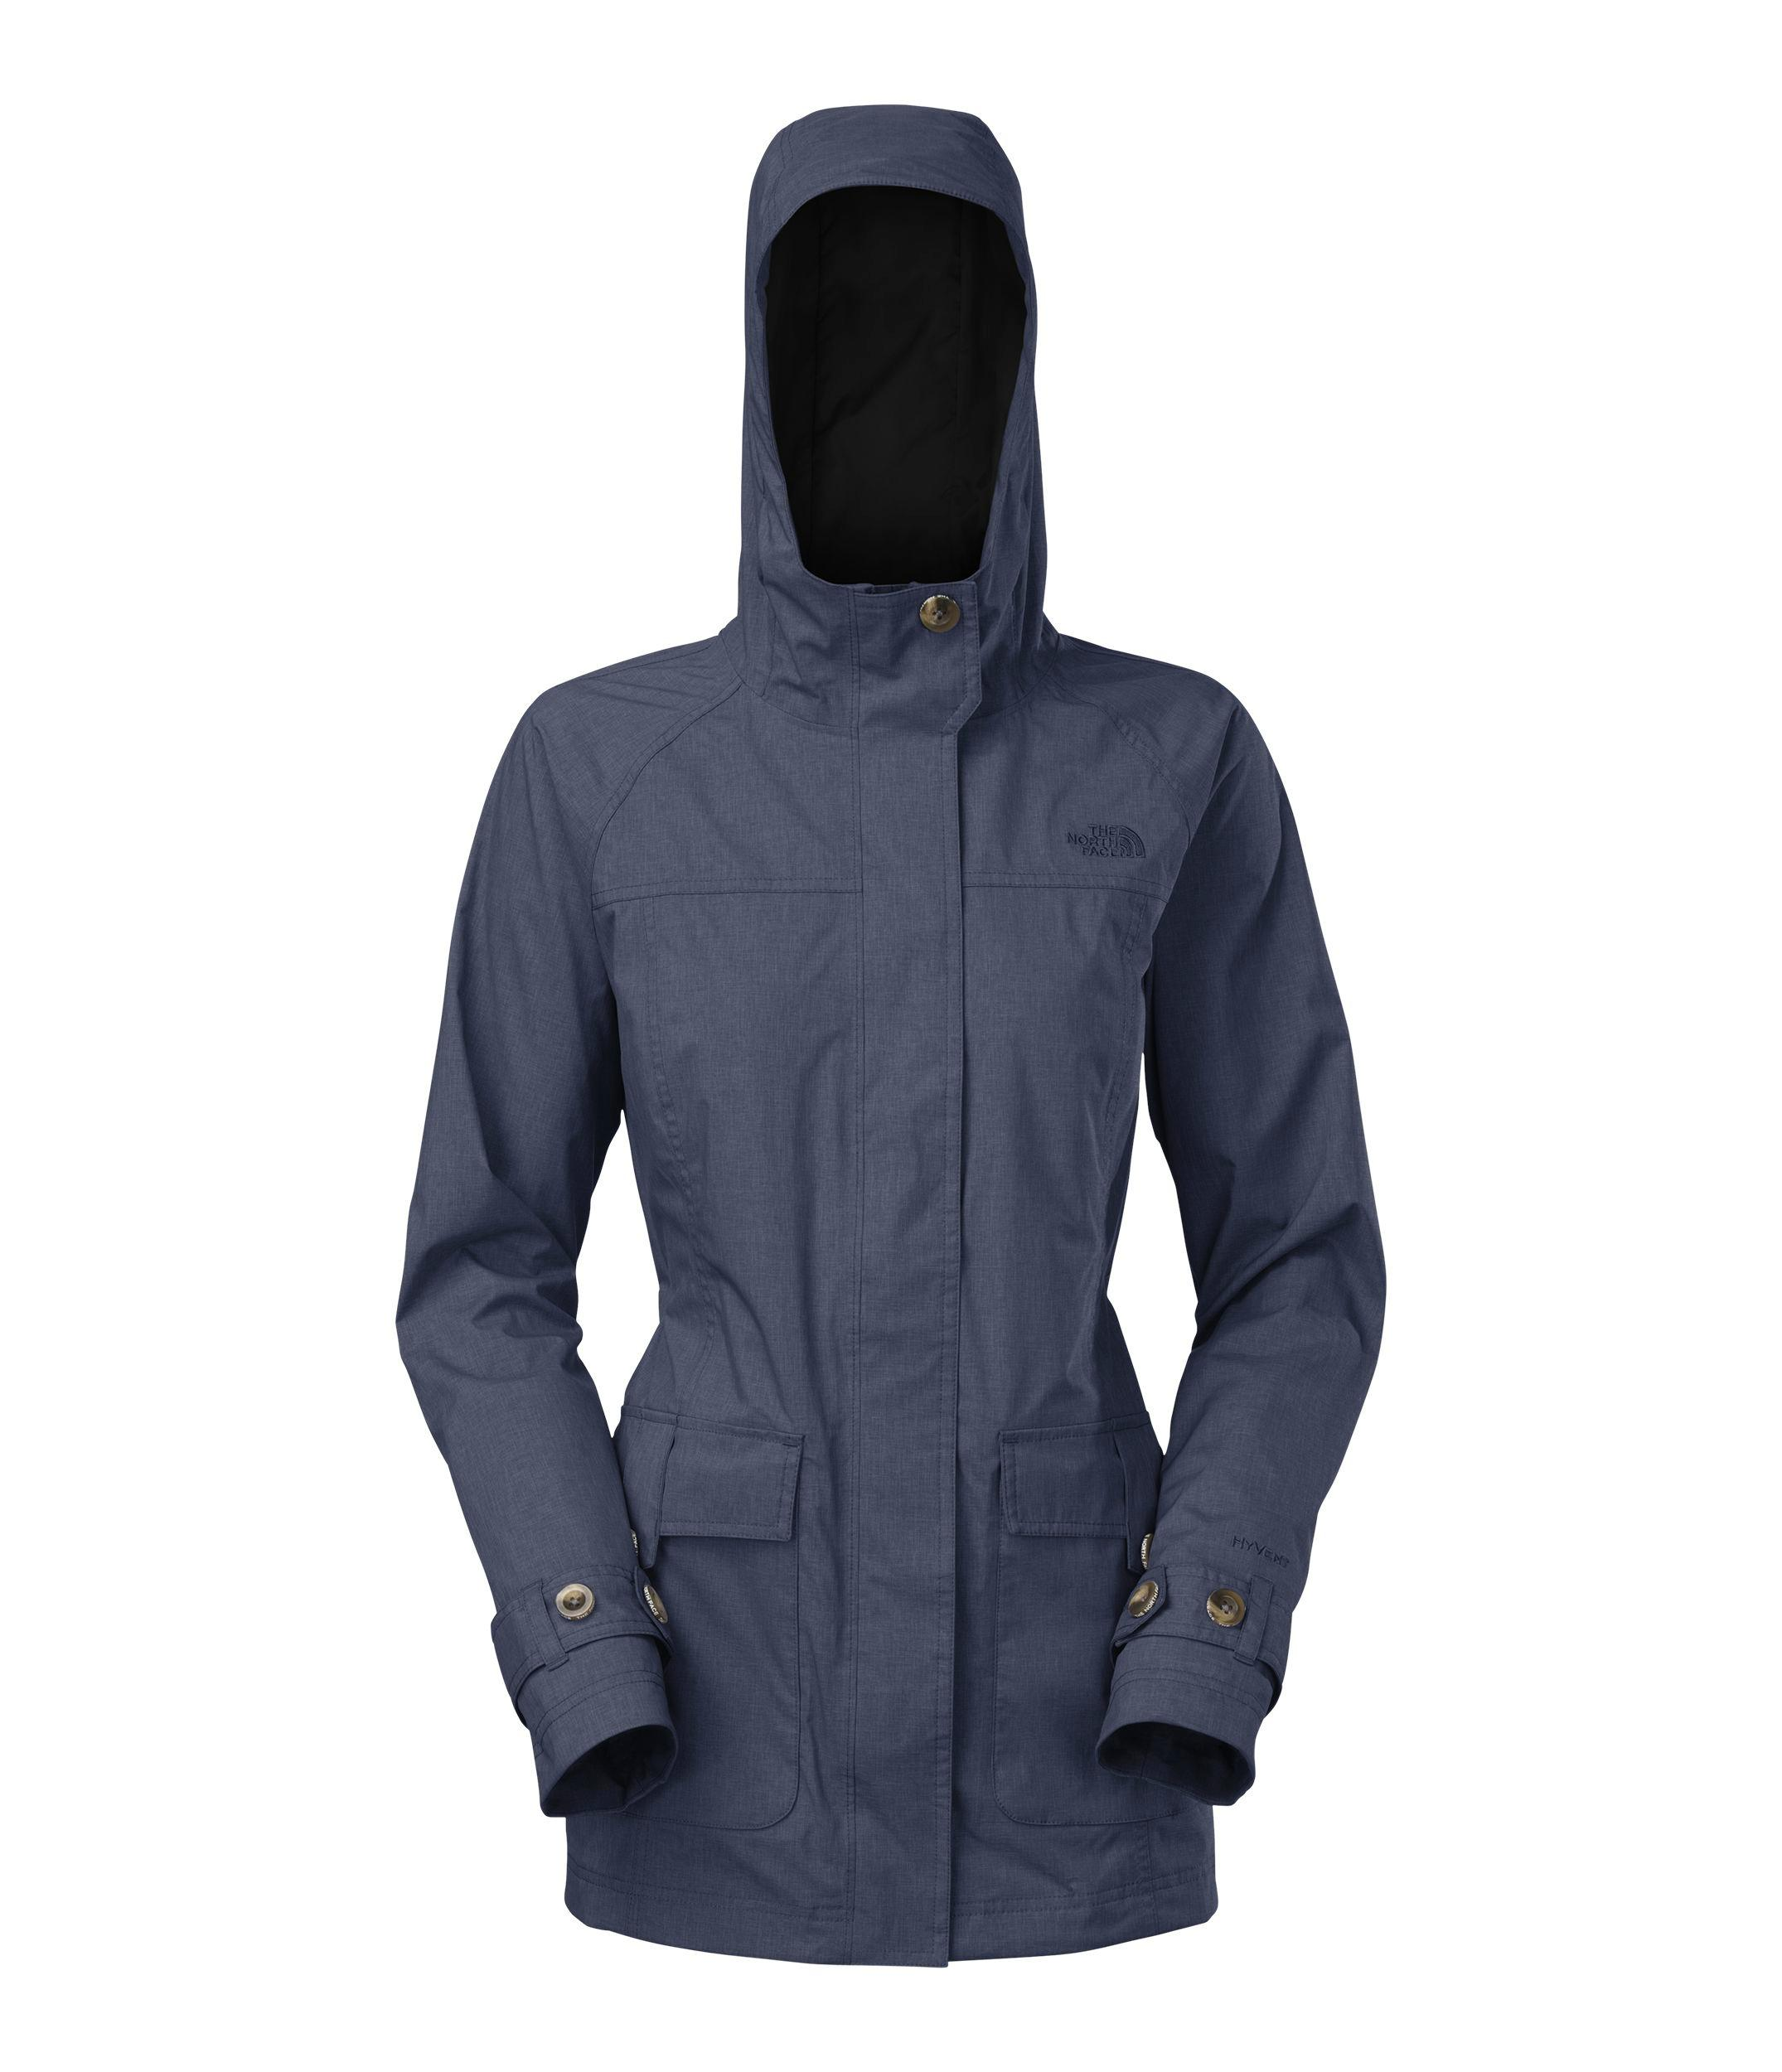 The north face women's carli jacket